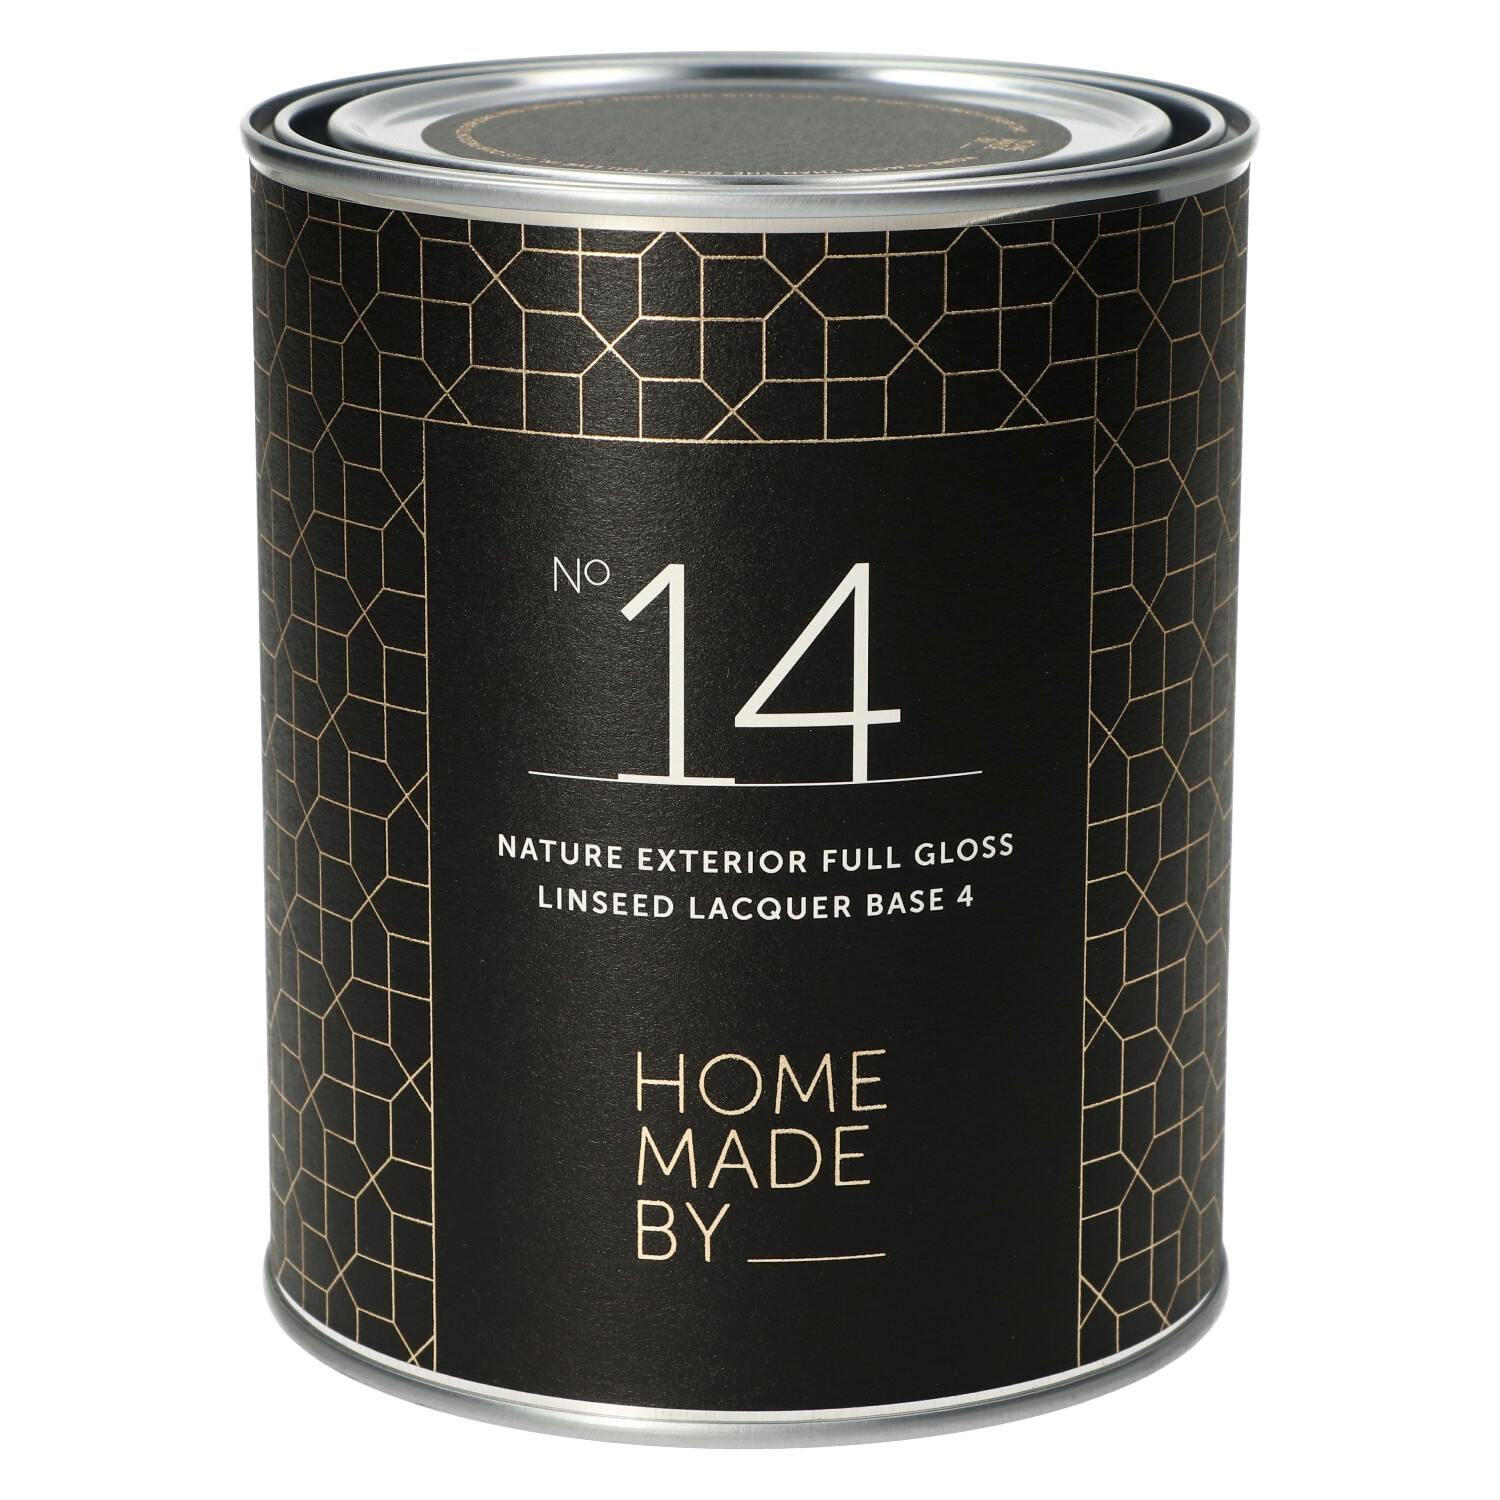 No. 14 NATURE EXTERIOR FULL GLOSS LINSEED LACQUER-1